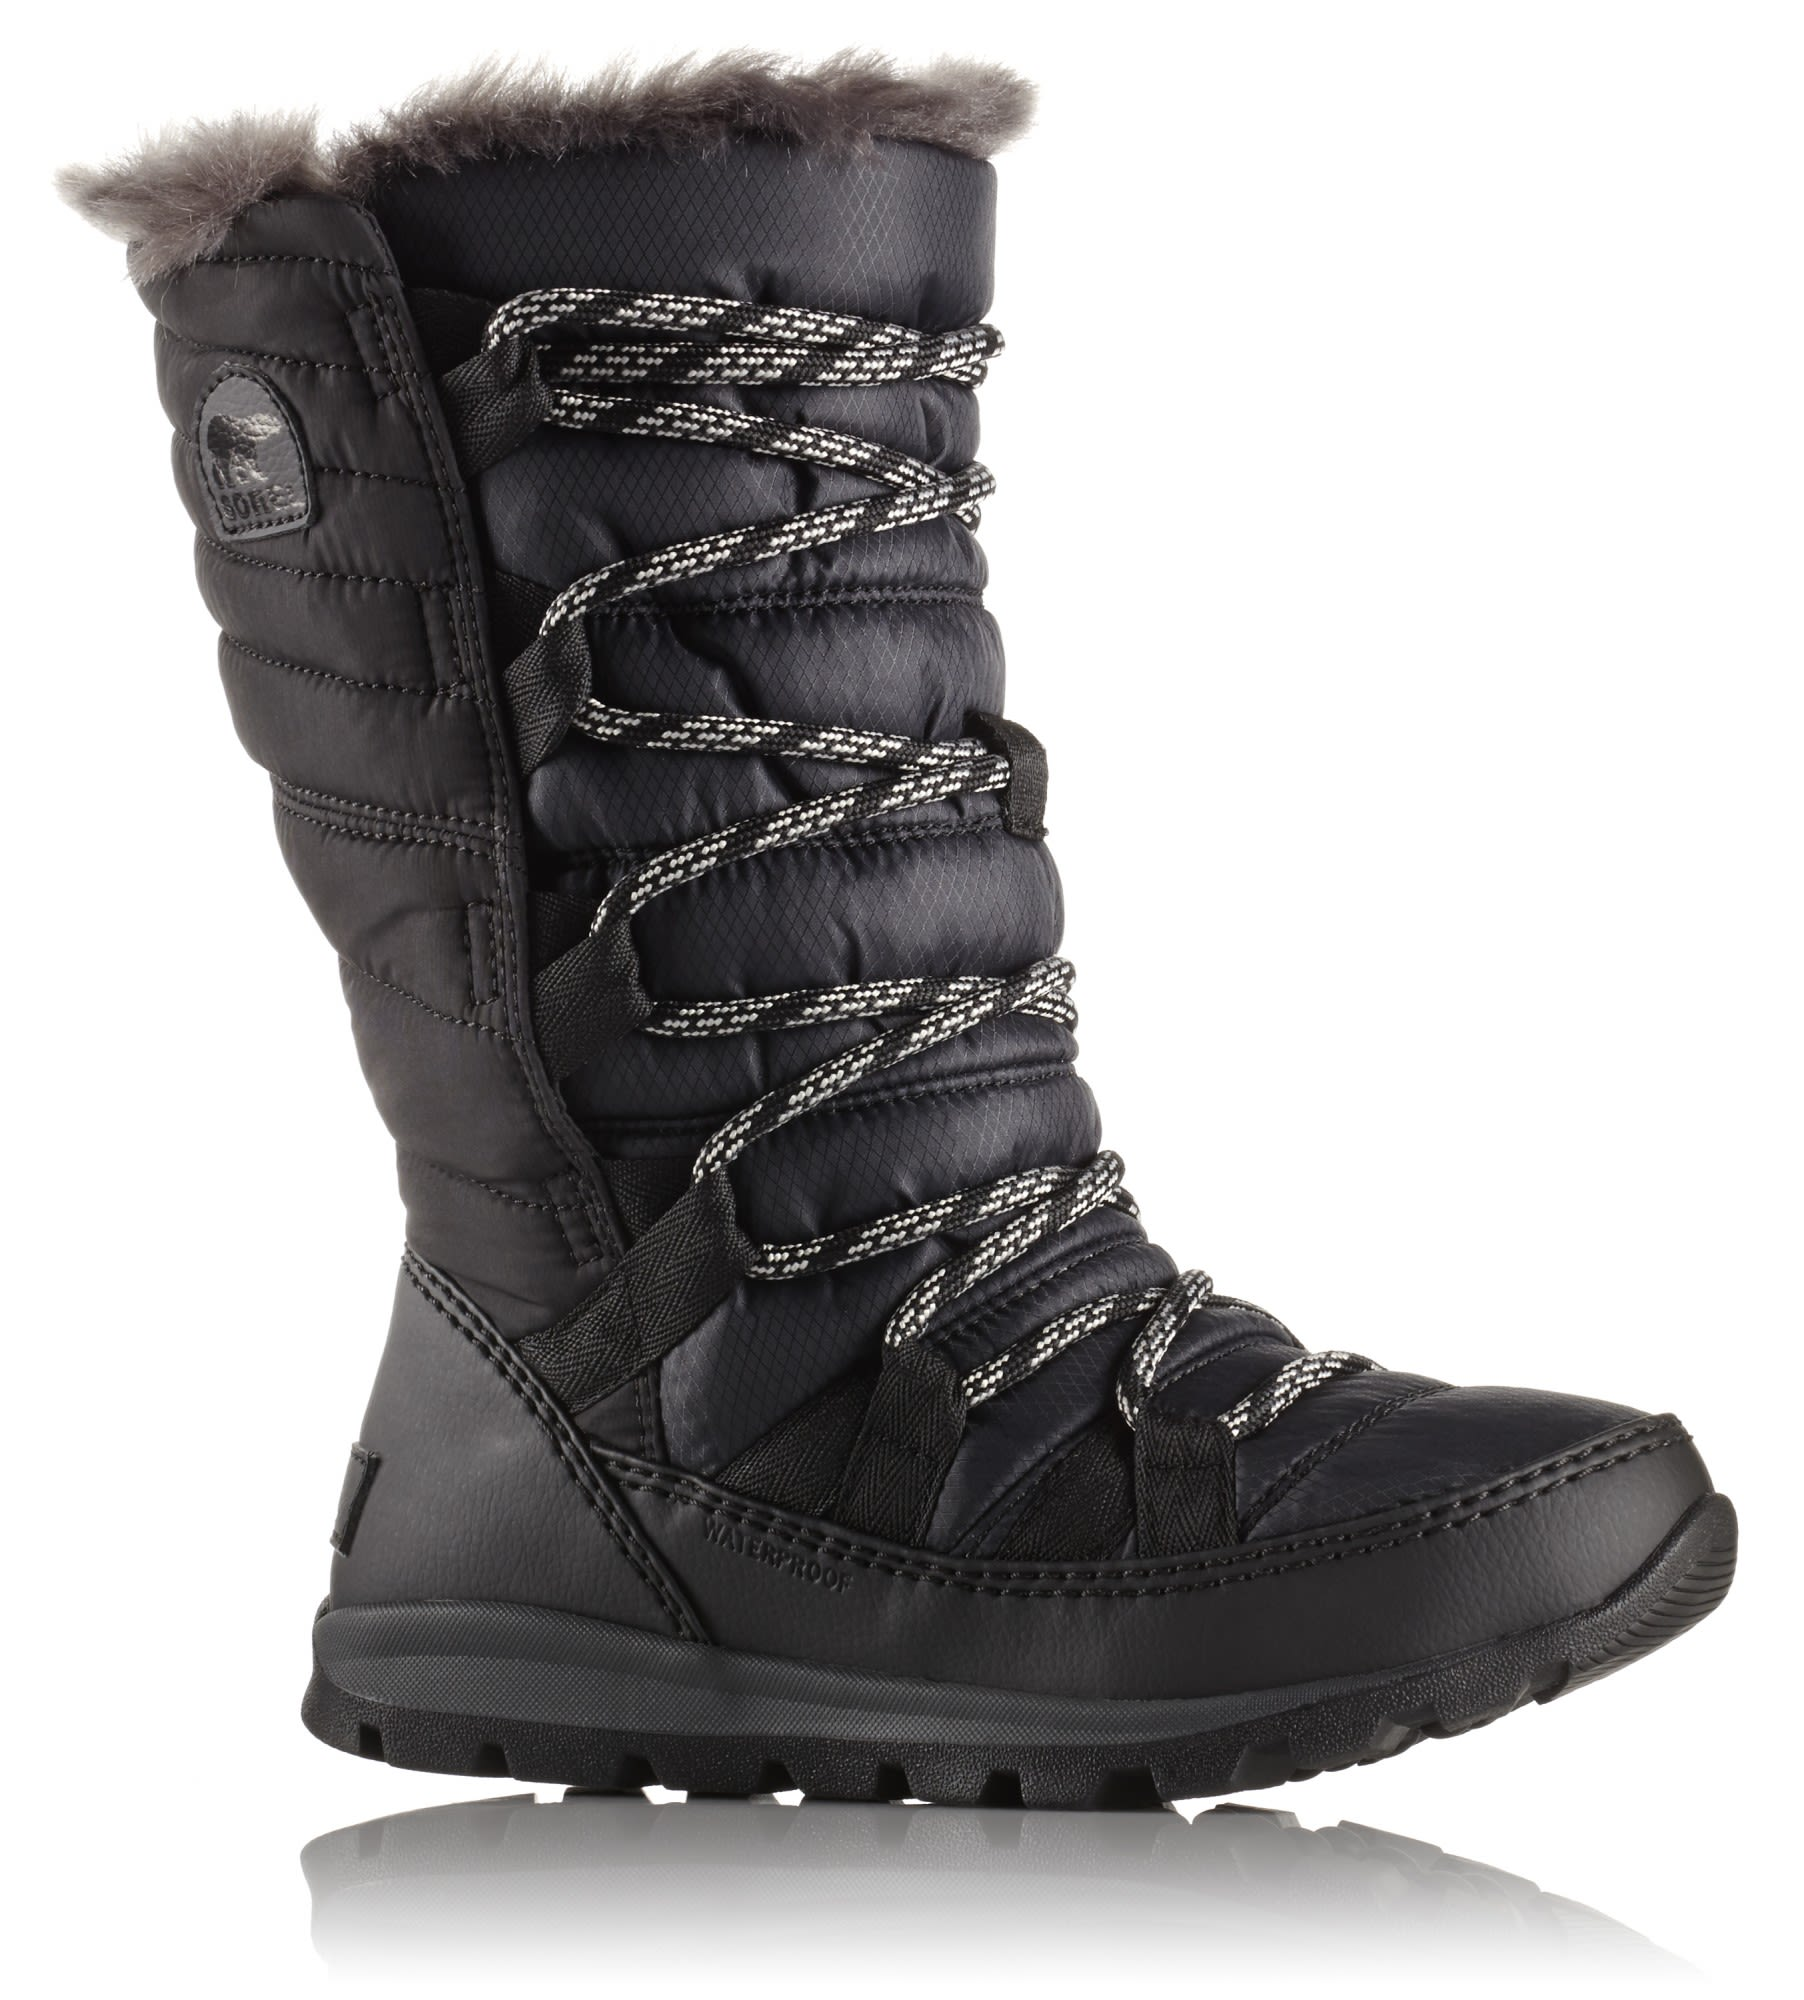 Sorel Youth Whitney Lace Schwarz, EU 32 -Farbe Black, 32